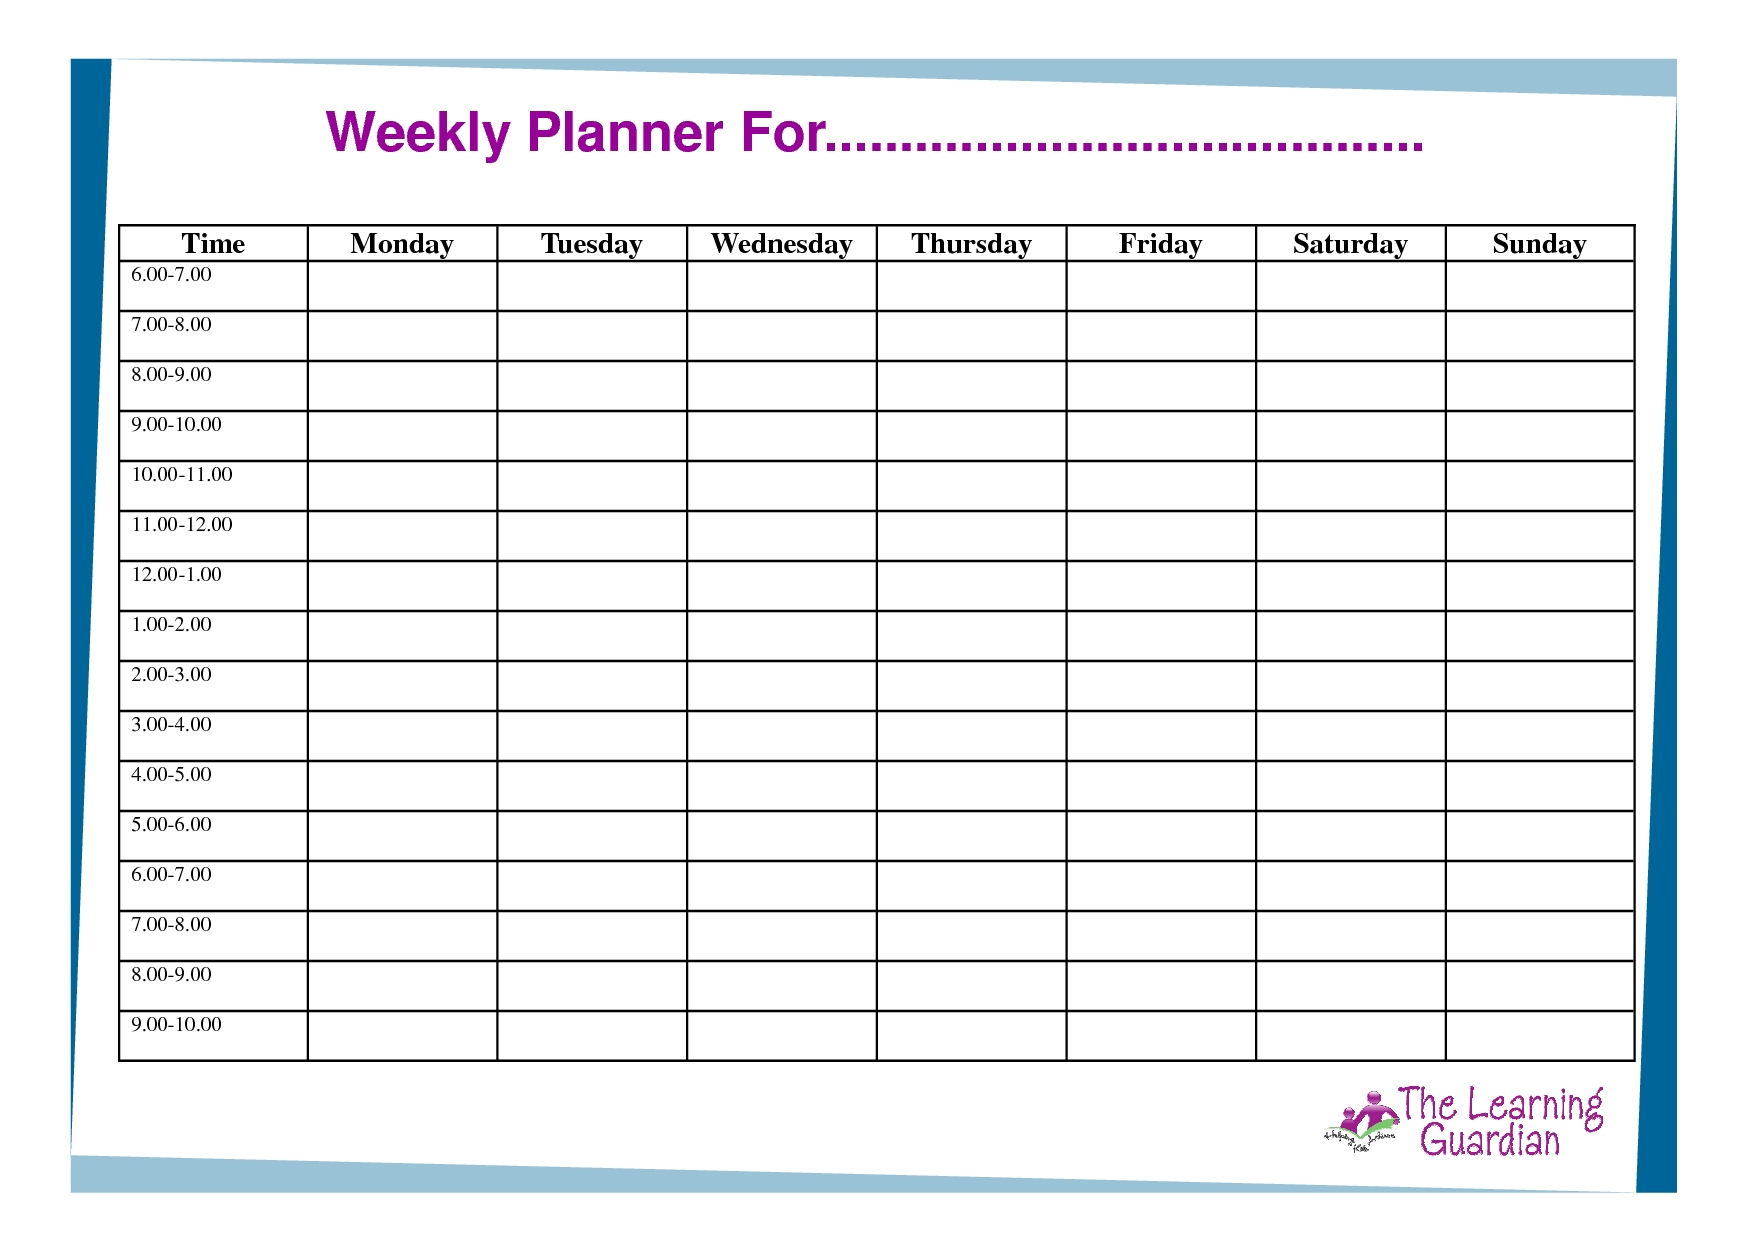 Weekly Planner With Time Slots Word Template – Calendar Schedule Templates With Hour Time Slots